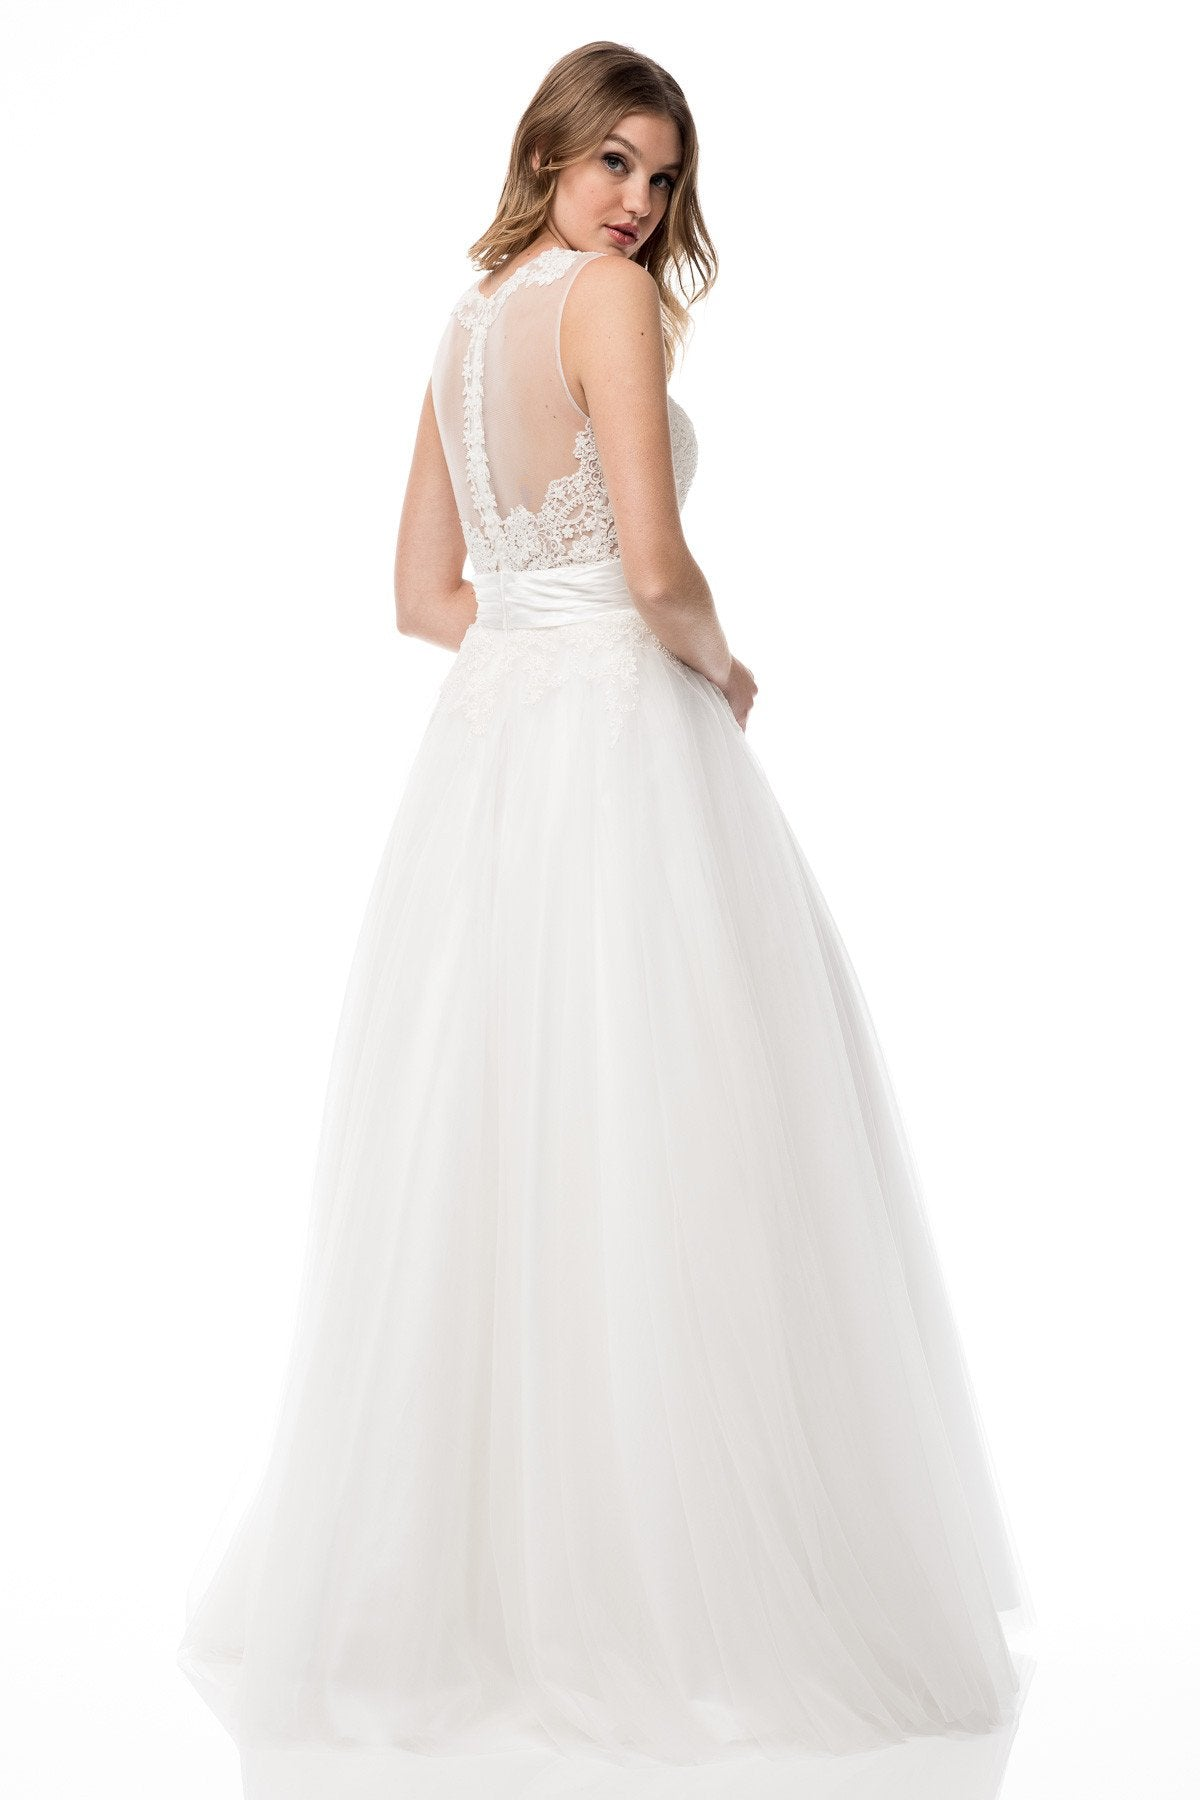 MZW2968 Tulle & Lace Sleeveless A-Line Gown